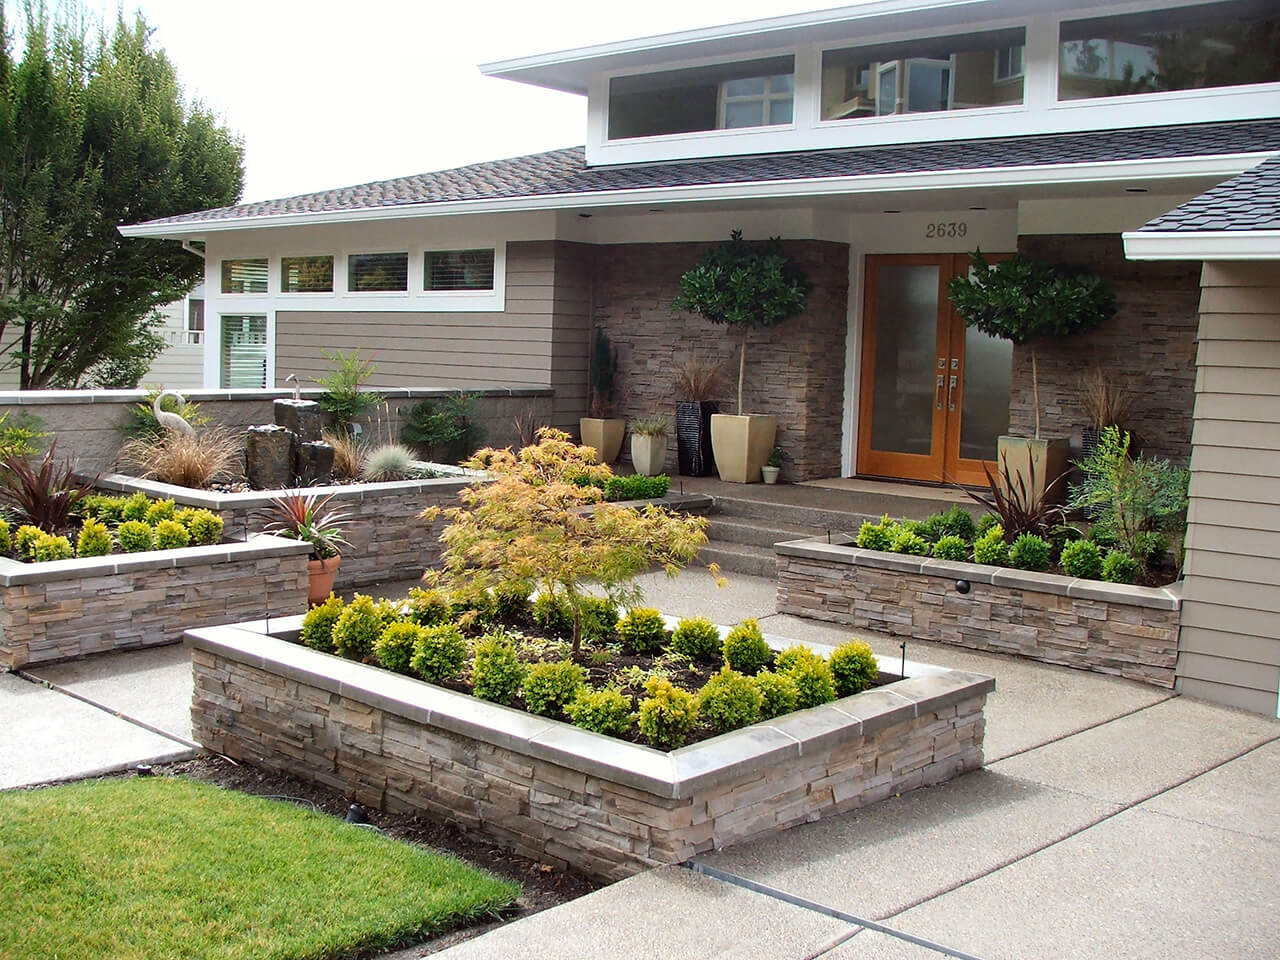 Yard Landscaping Ideas Of 50 Best Front Yard Landscaping Ideas And Garden Designs